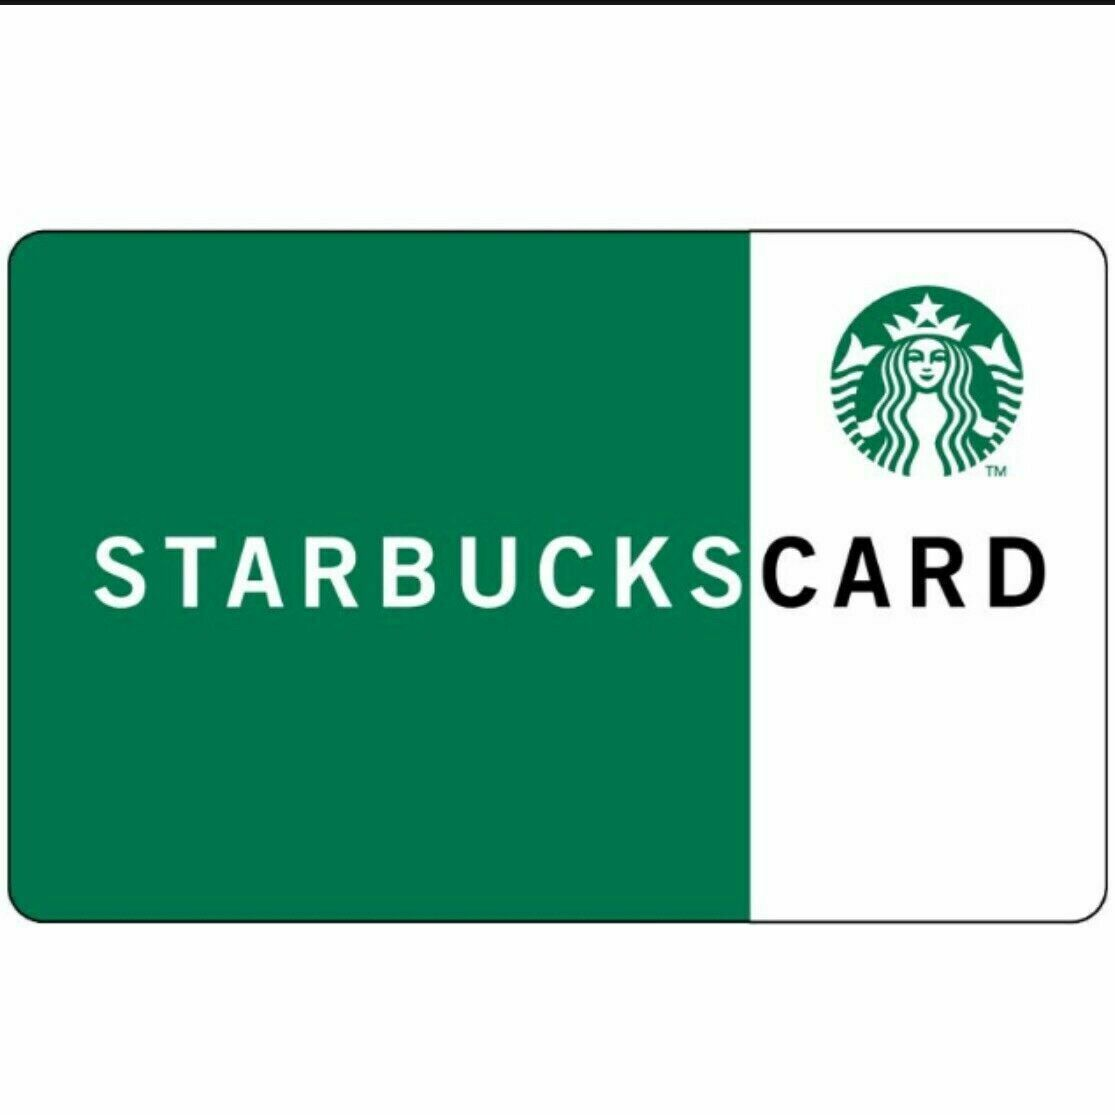 Starbucks Gift Card 95.25 - $73.01